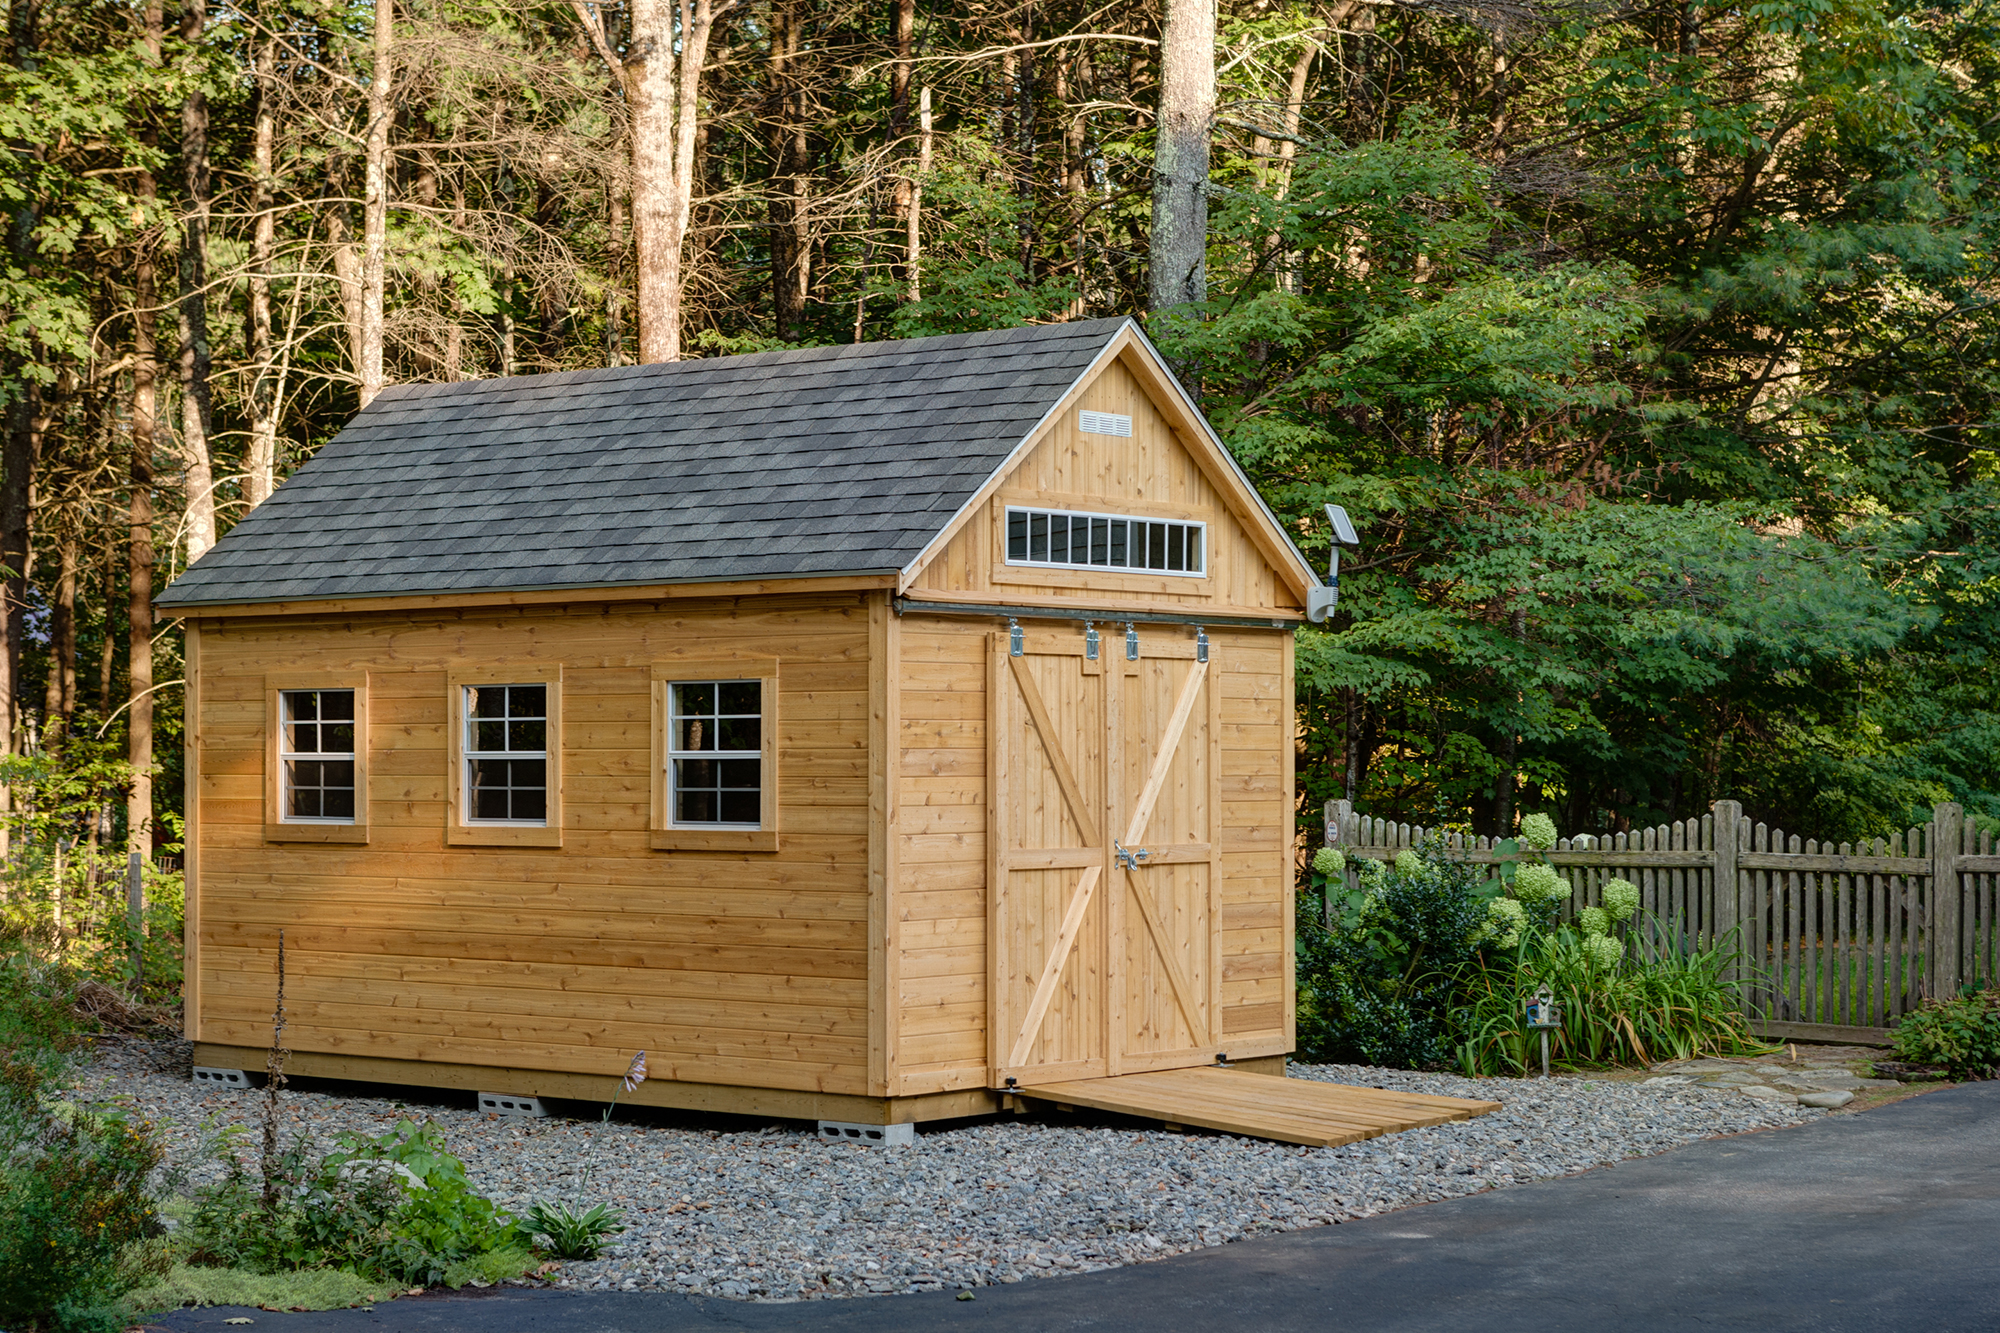 The Cohasset - Post Woodworking's most popular shed design.